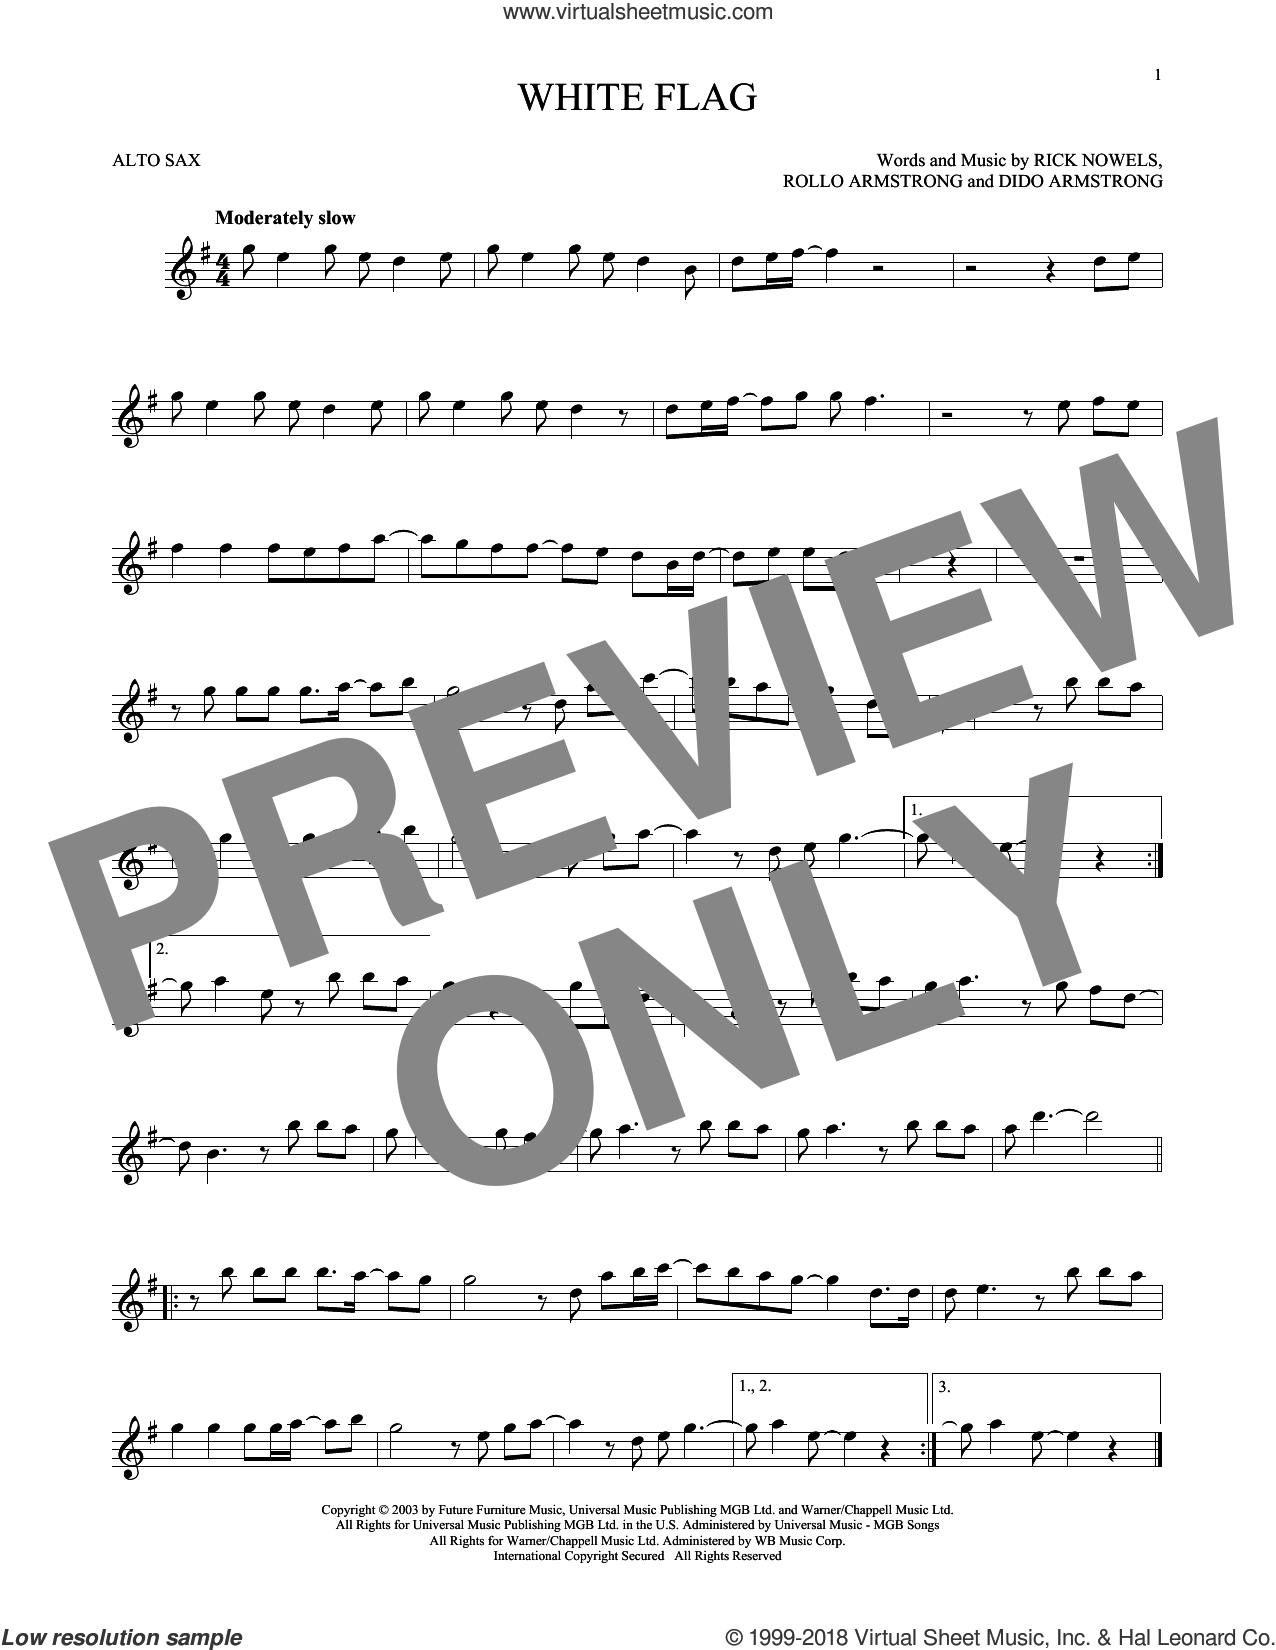 White Flag sheet music for alto saxophone solo by Dido Armstrong, Rick Nowels and Rollo Armstrong, intermediate skill level